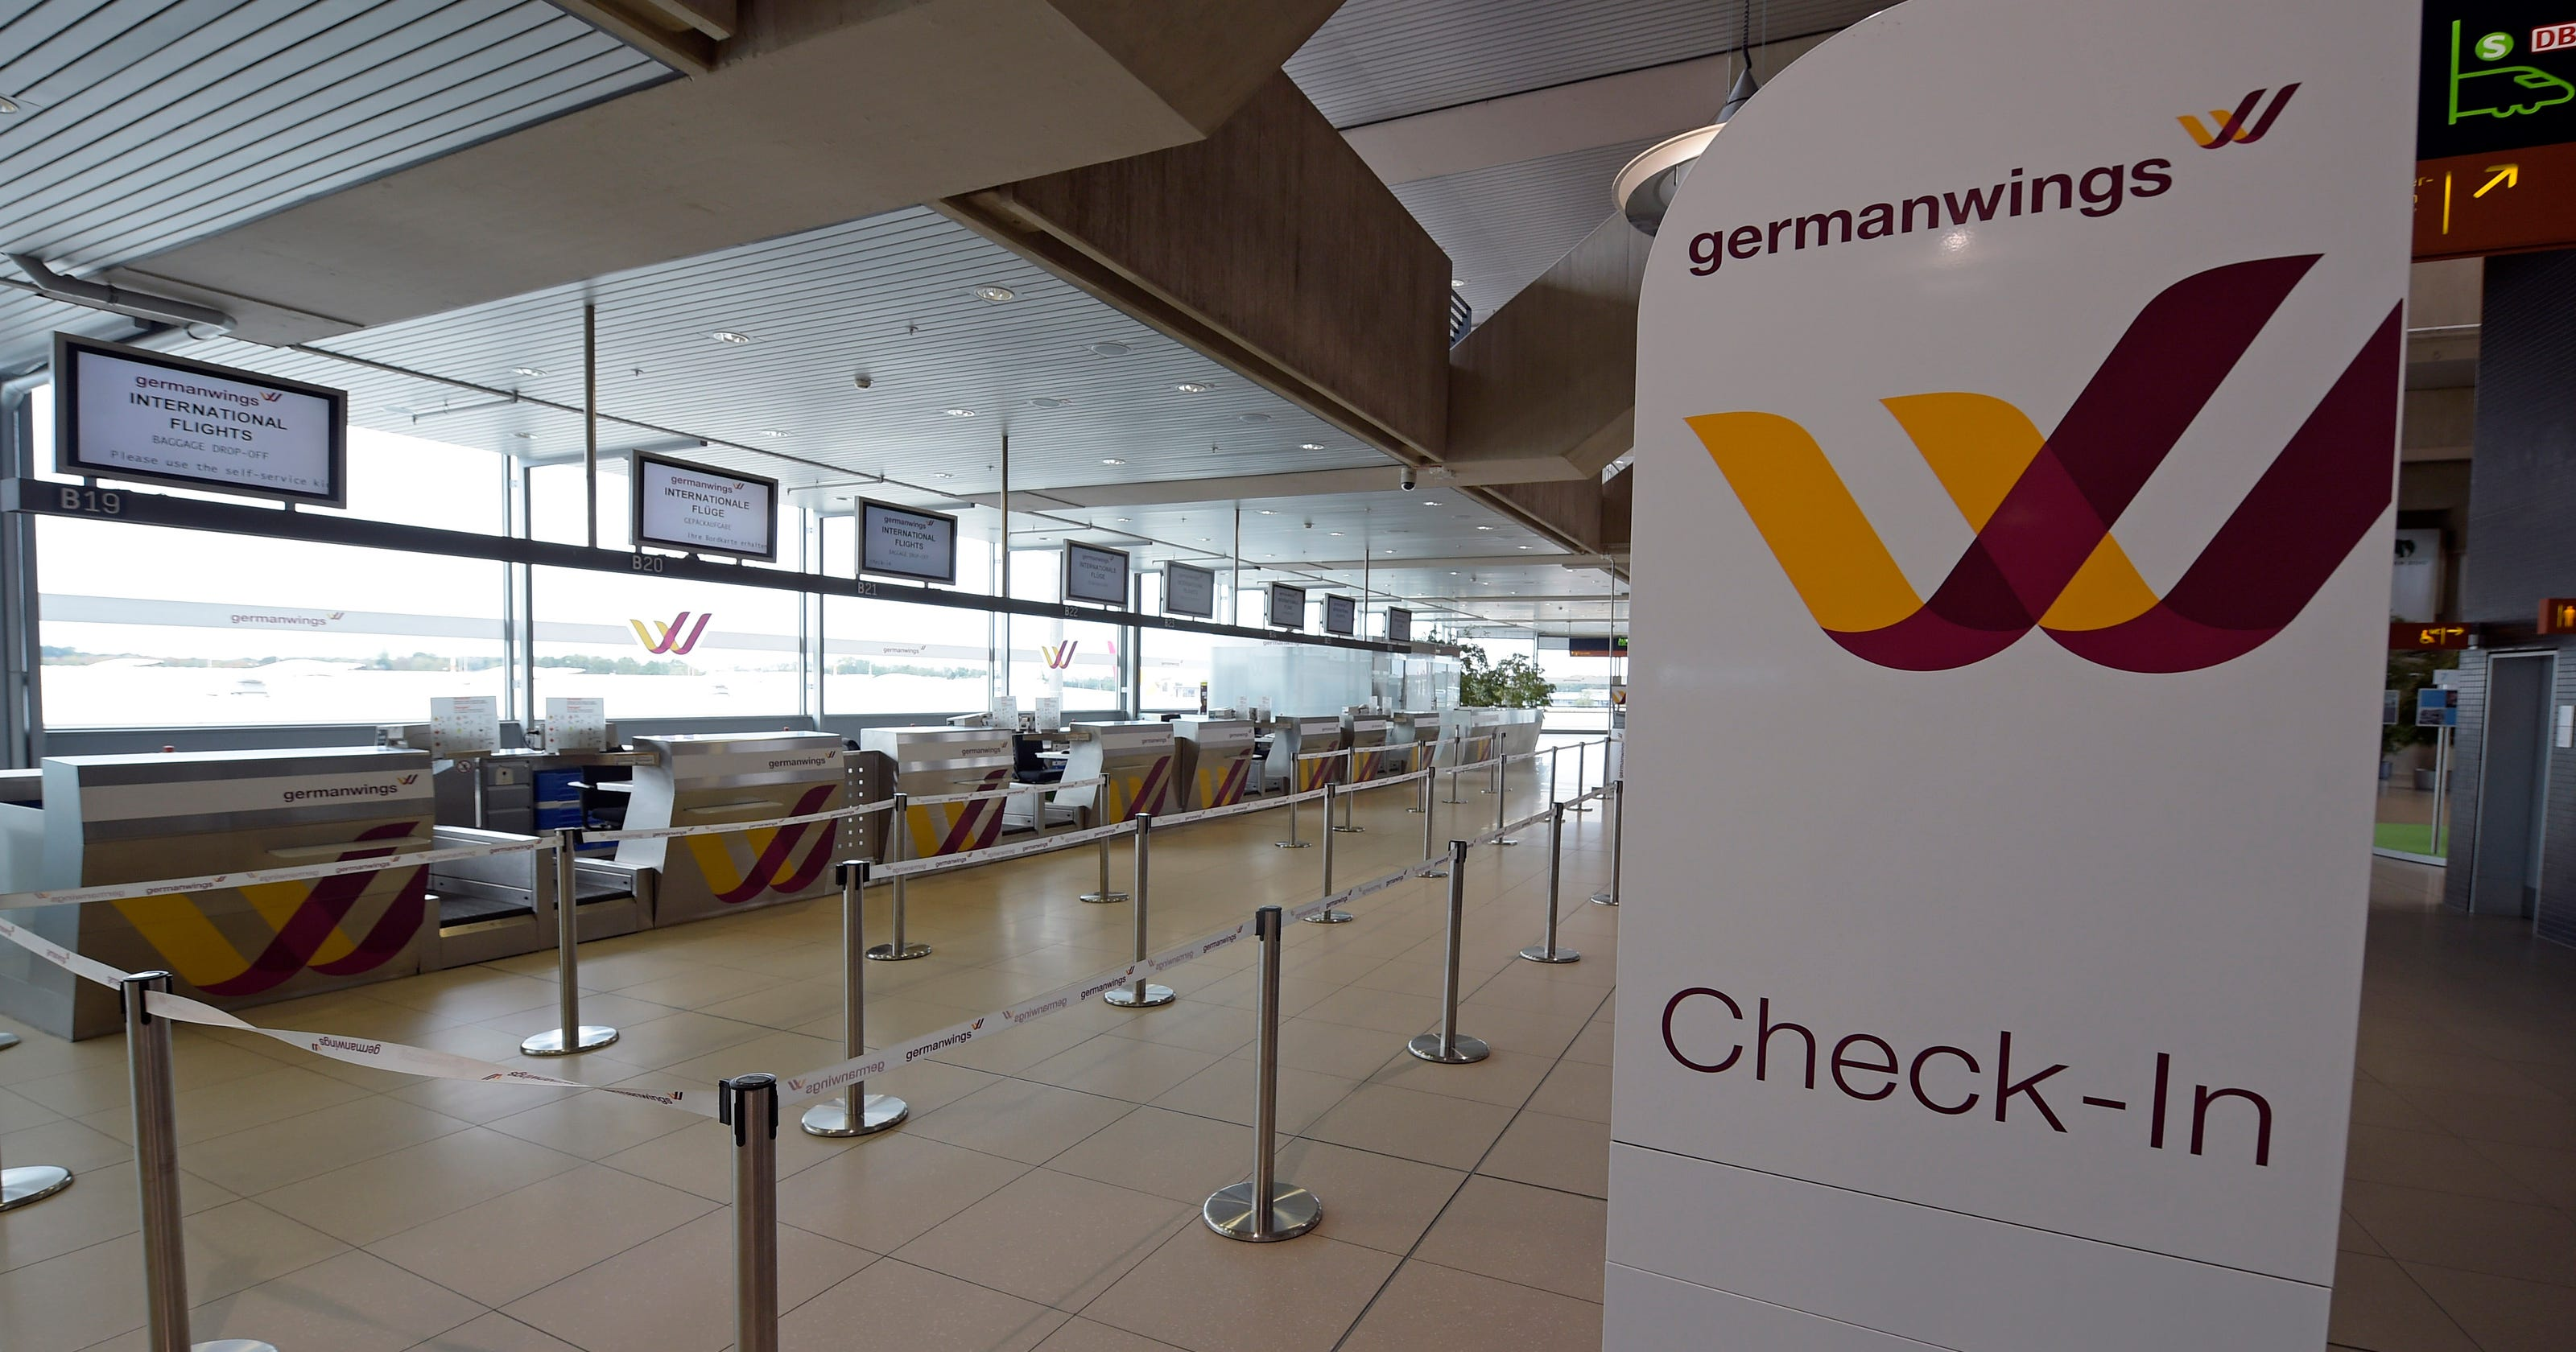 Germanwings Well Known Low Cost Carrier In Europe